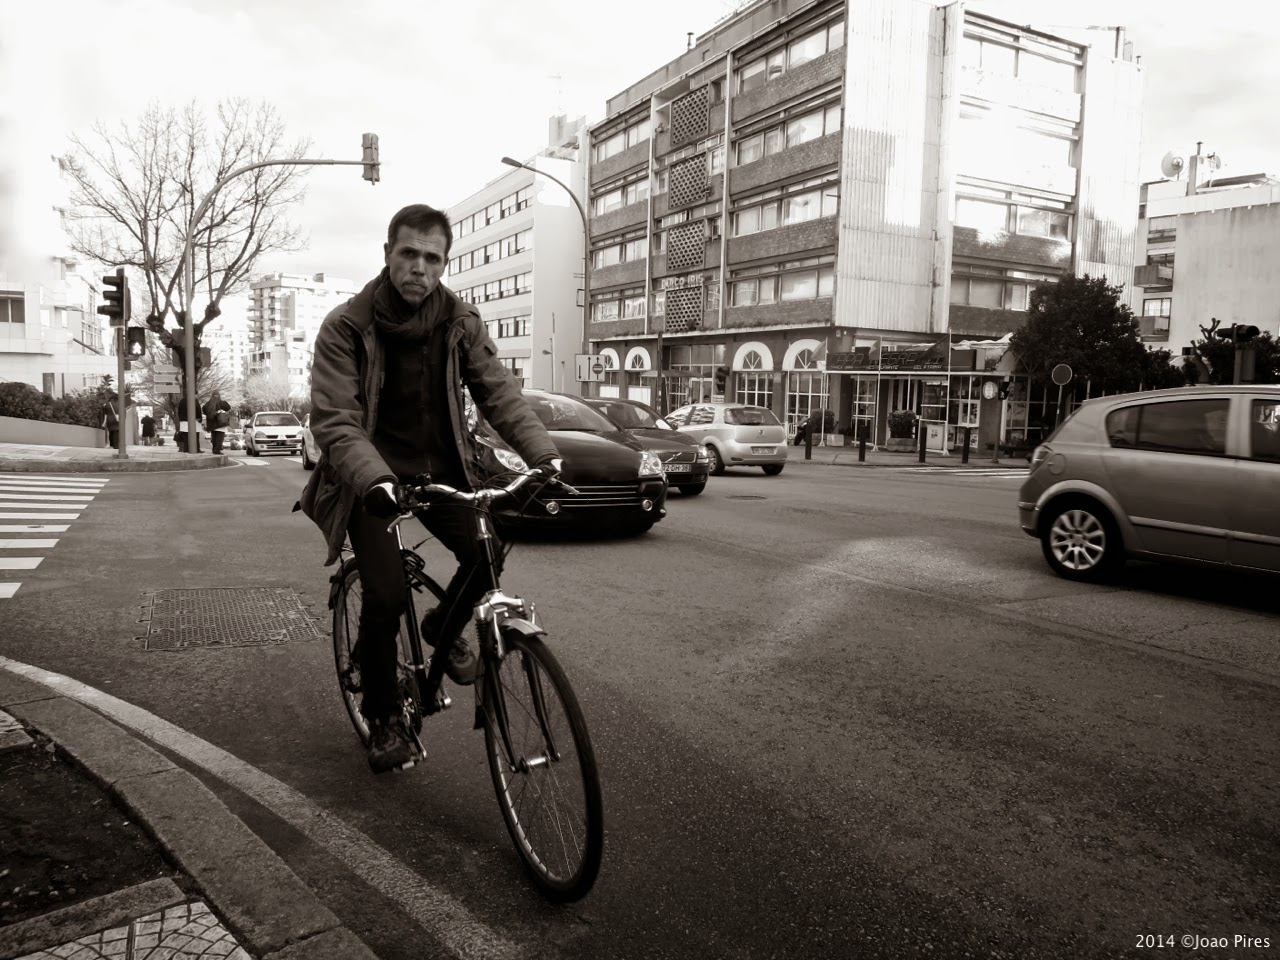 The Bicycle Man by ©Joao Pires